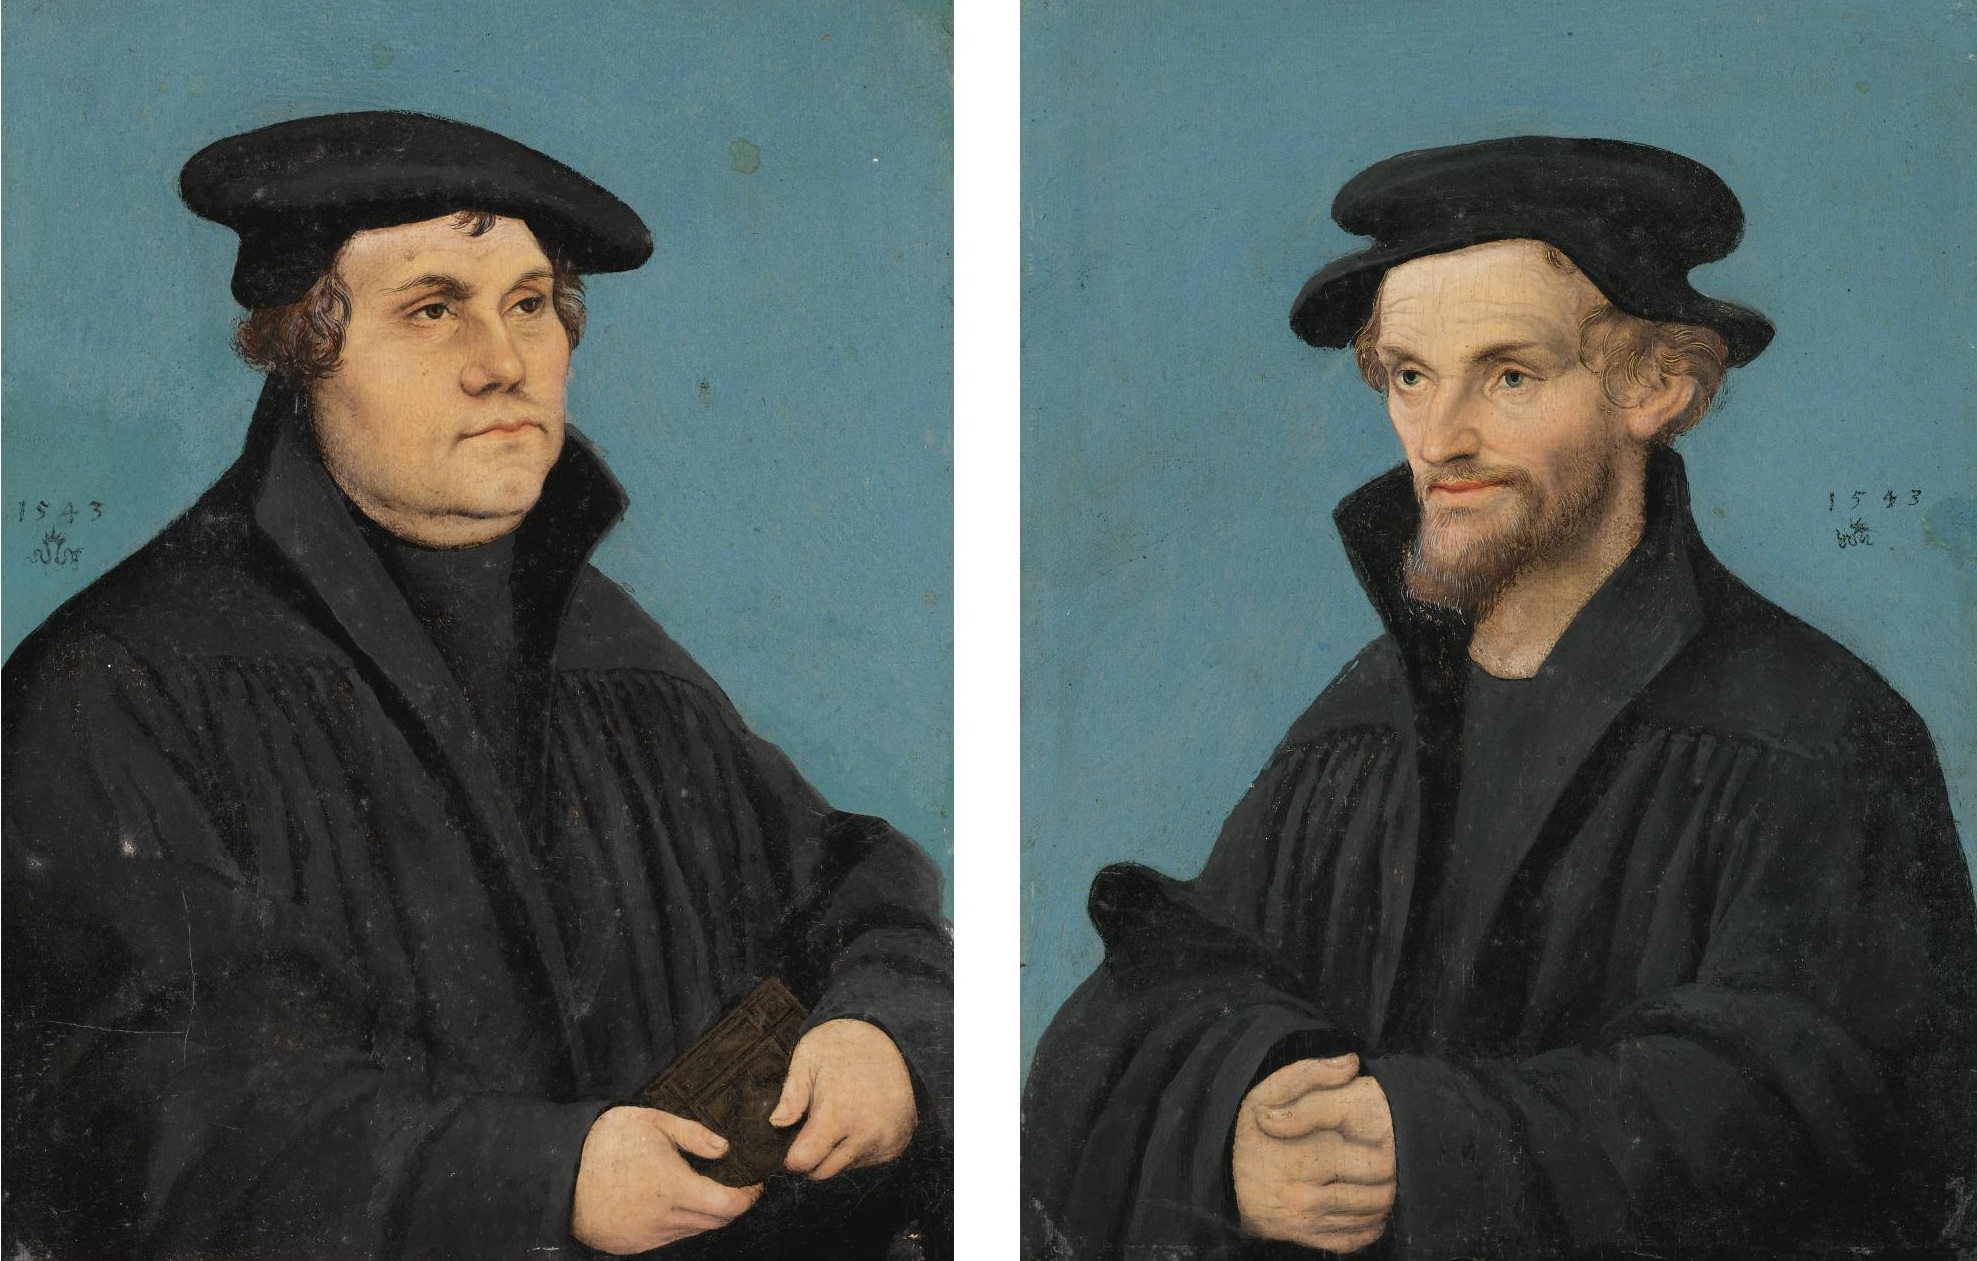 Lucas-Cranach-l'Ancien 1543 Martin-Luther-And-Philipp-Melanchthon coll privee